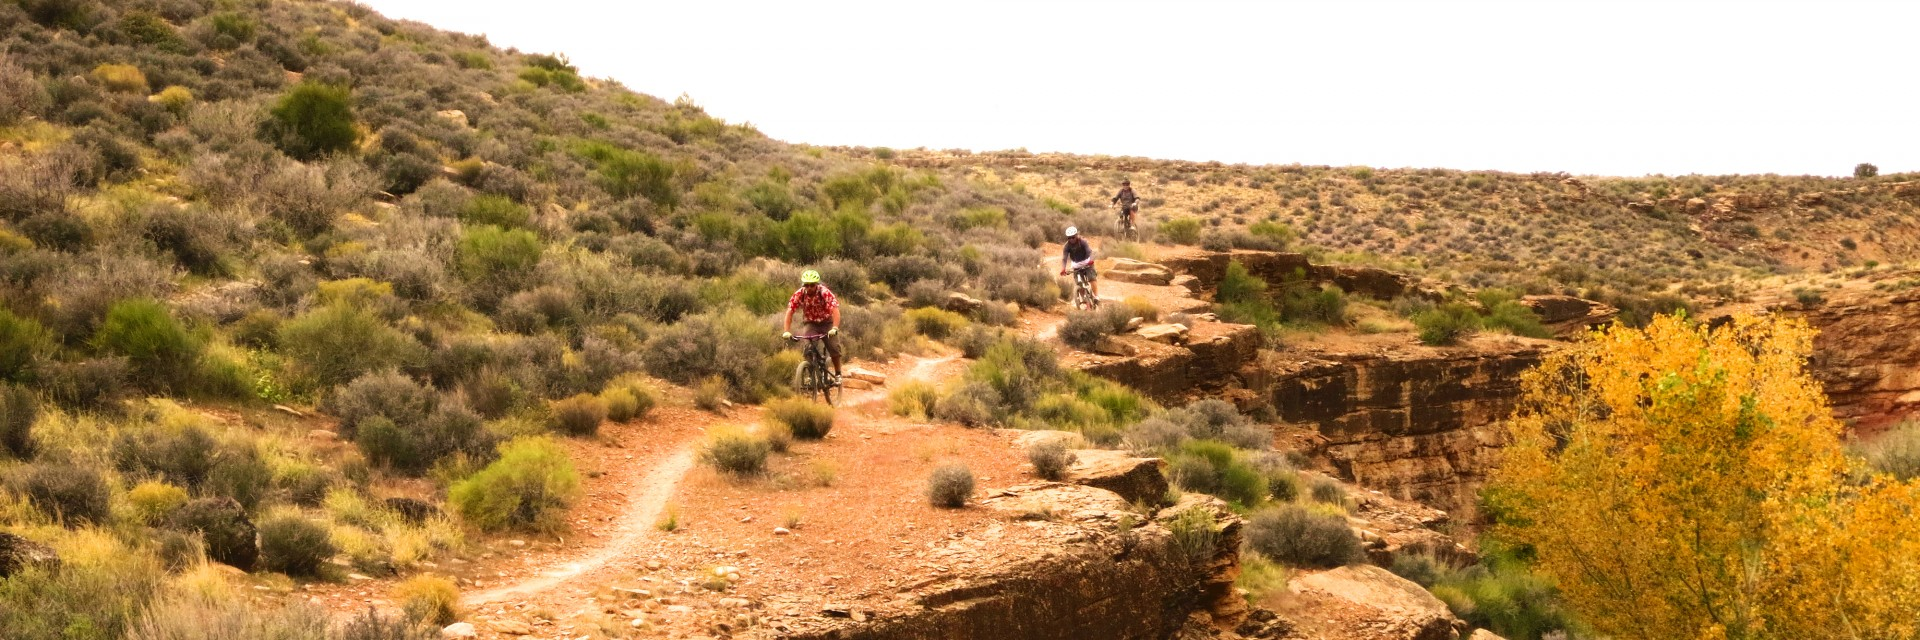 A guide leads mountain bike riders on singletrack section during a 3-day tour of Gooseberry Mesa